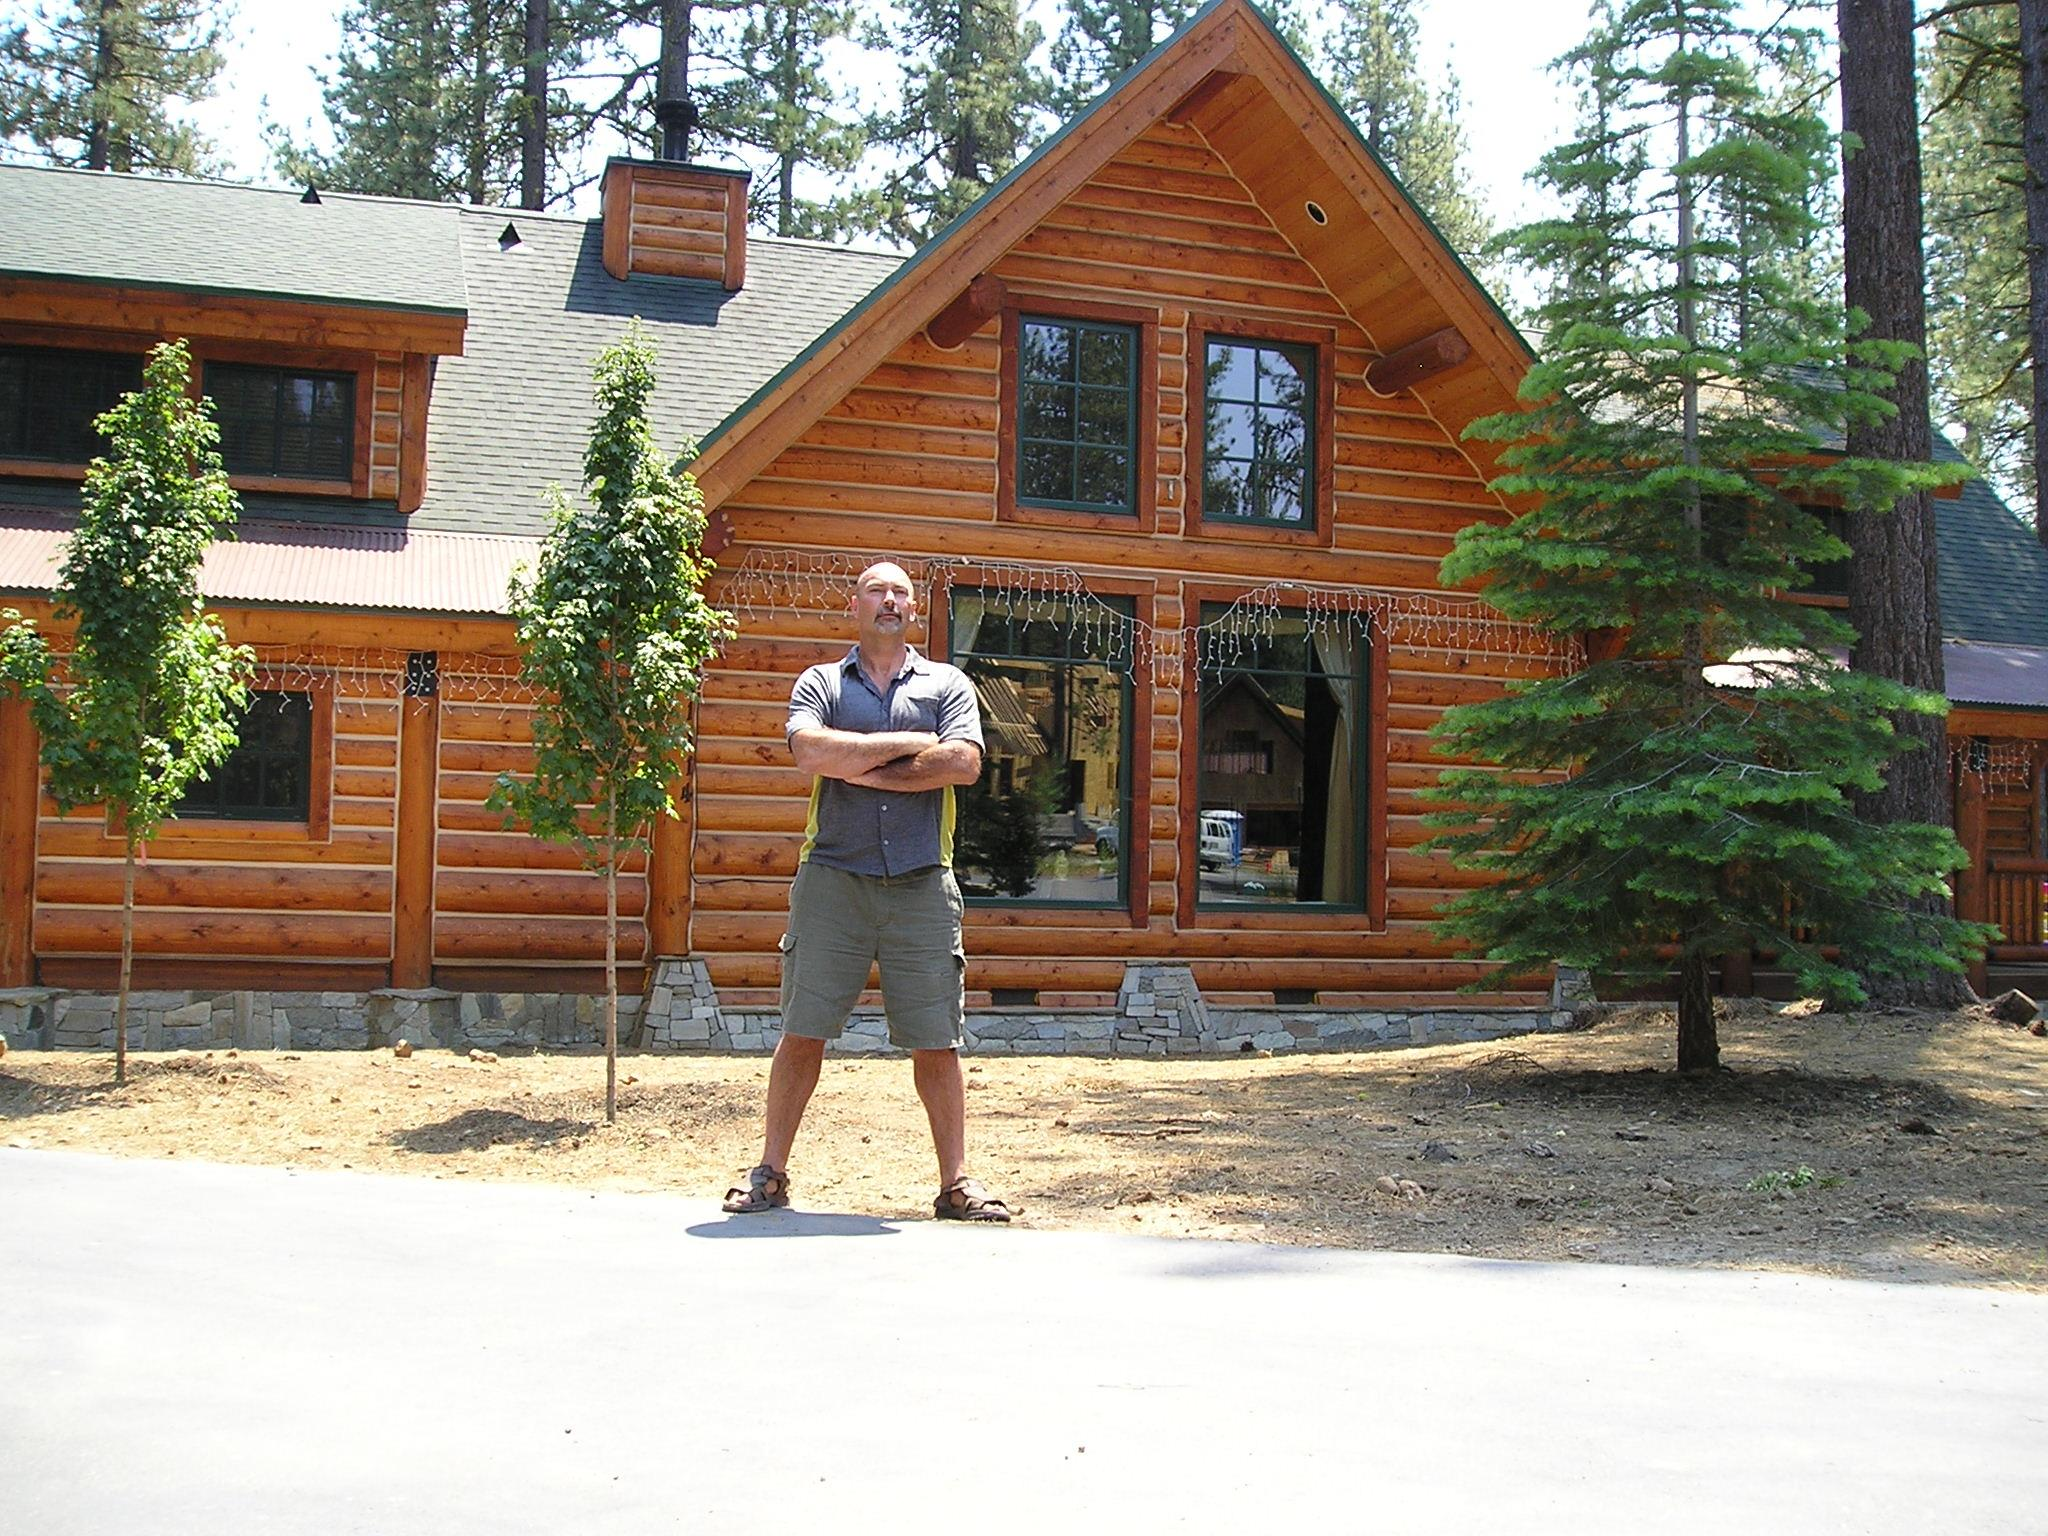 log home builders grizzlylogbuilders,utah log home builders, truckee log builders,log homes in lake tahoe,timber homes,dove tail timber homes lake tahoe,lake tahoe log builders